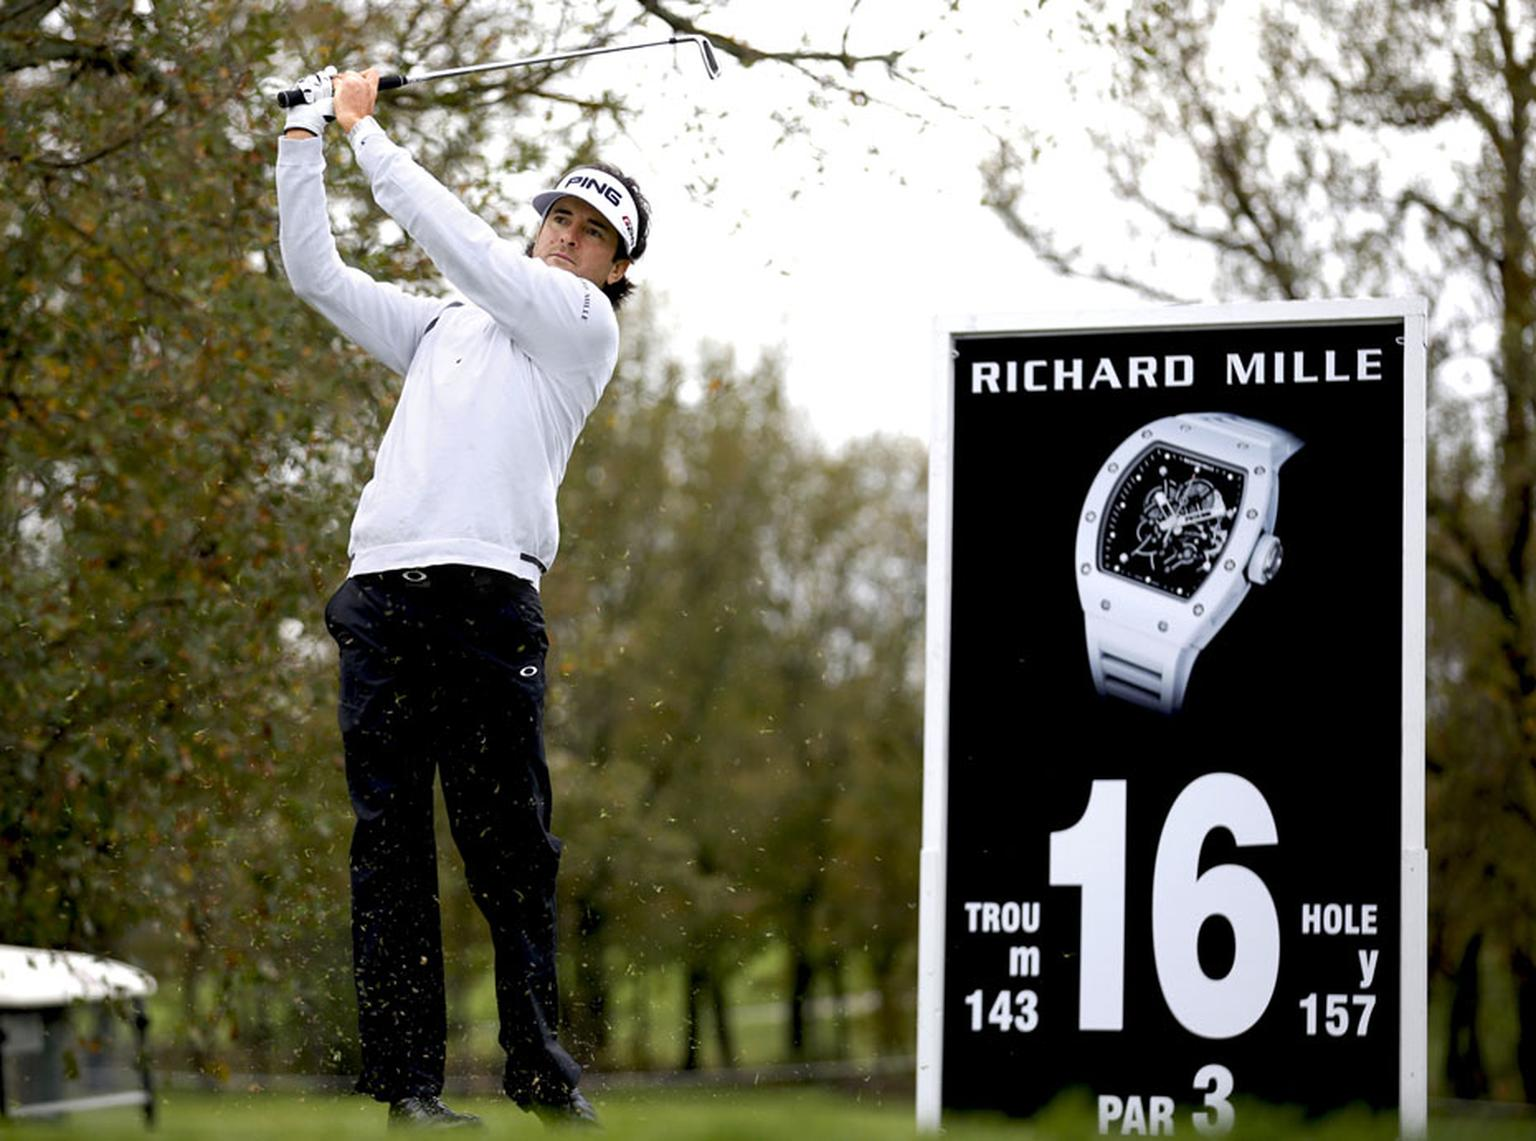 RichardMille InvitationalGetty Image1.jpg